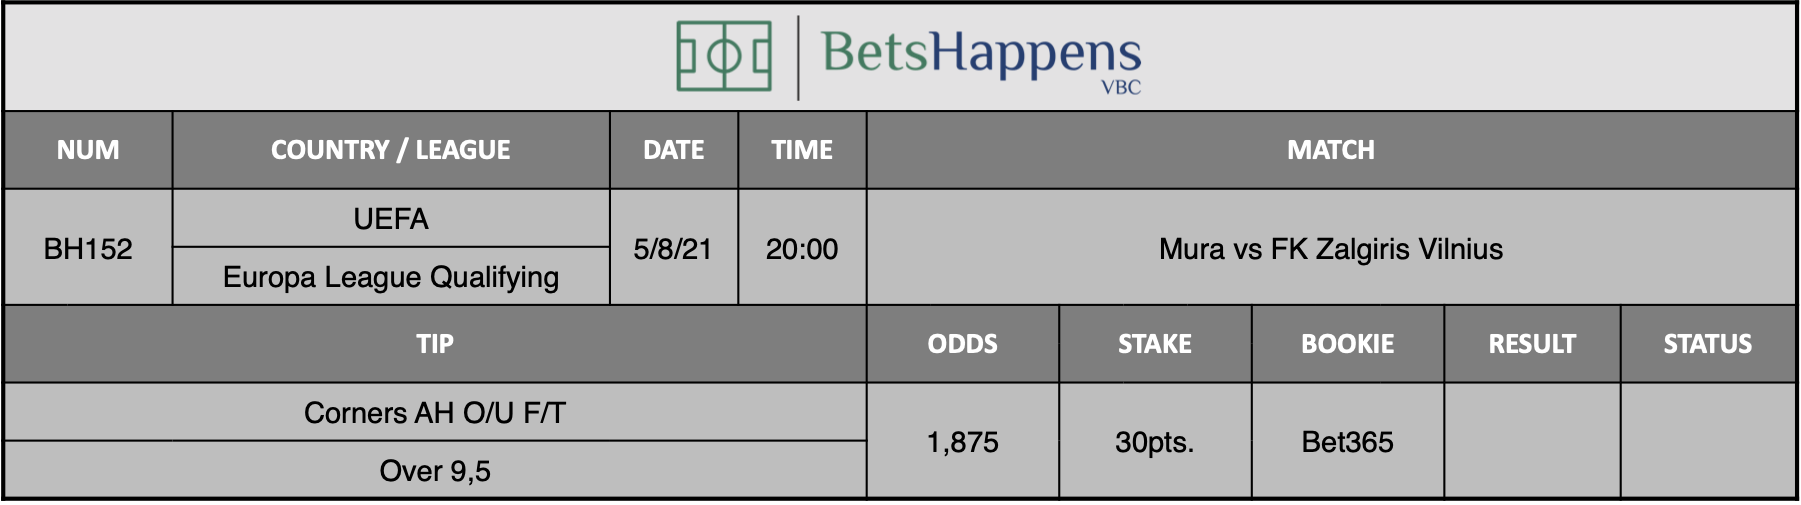 Our advice for the Mura vs FK Zalgiris Vilnius match in which Corners AH O / U F / T Over 9.5 is recommended